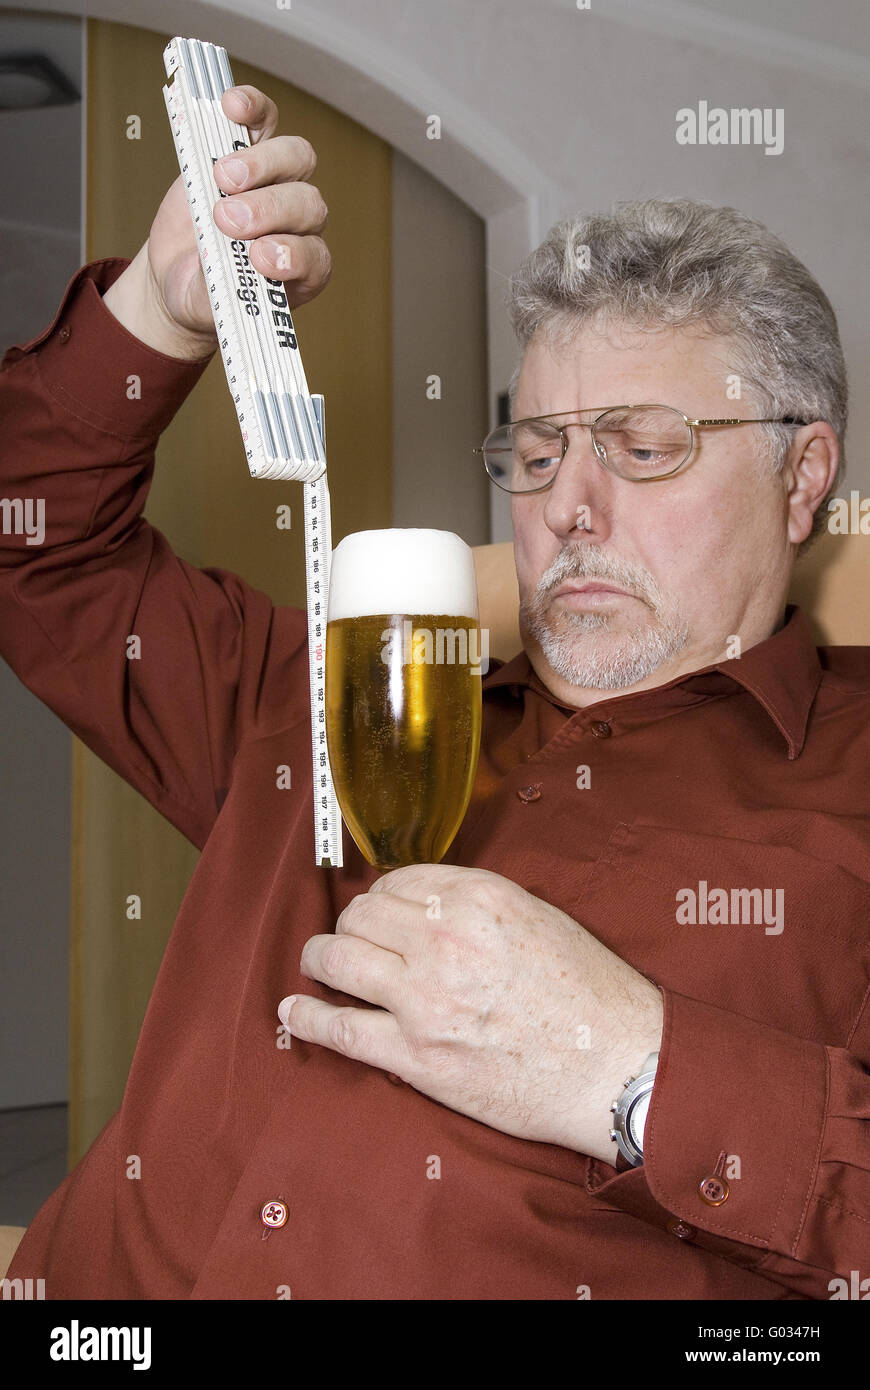 Man checked with a ruler the level of the beer gla Stock Photo